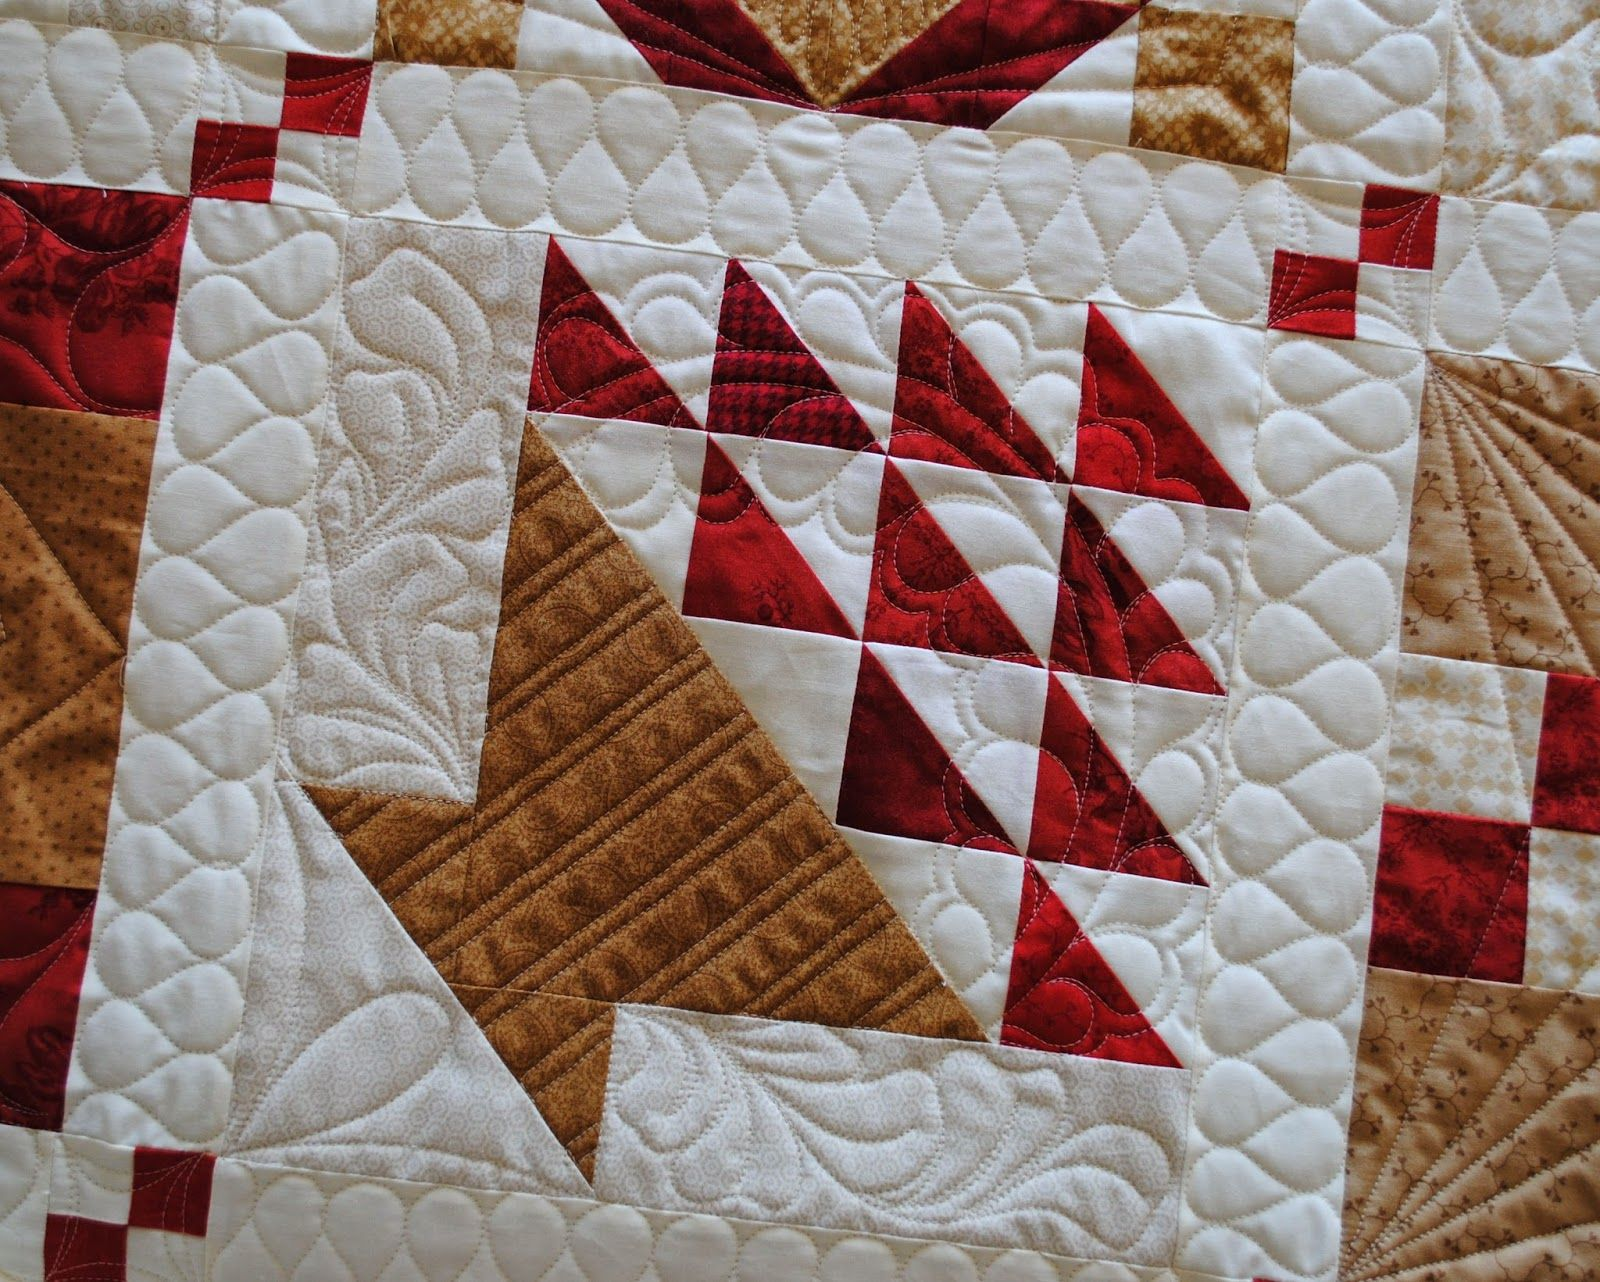 quilting it love the basket design difficult to see the